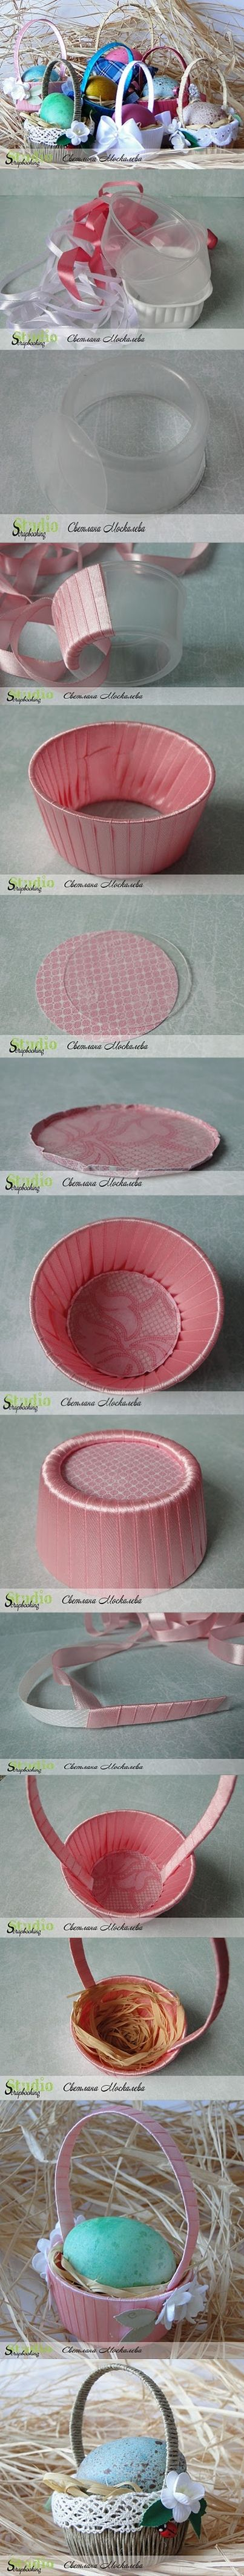 Cesta de Páscoa de DIY com tigela de plástico descartável - http://www.healthdaily.me/diy-easter-basket-with-disposable-plastic-bowl/: